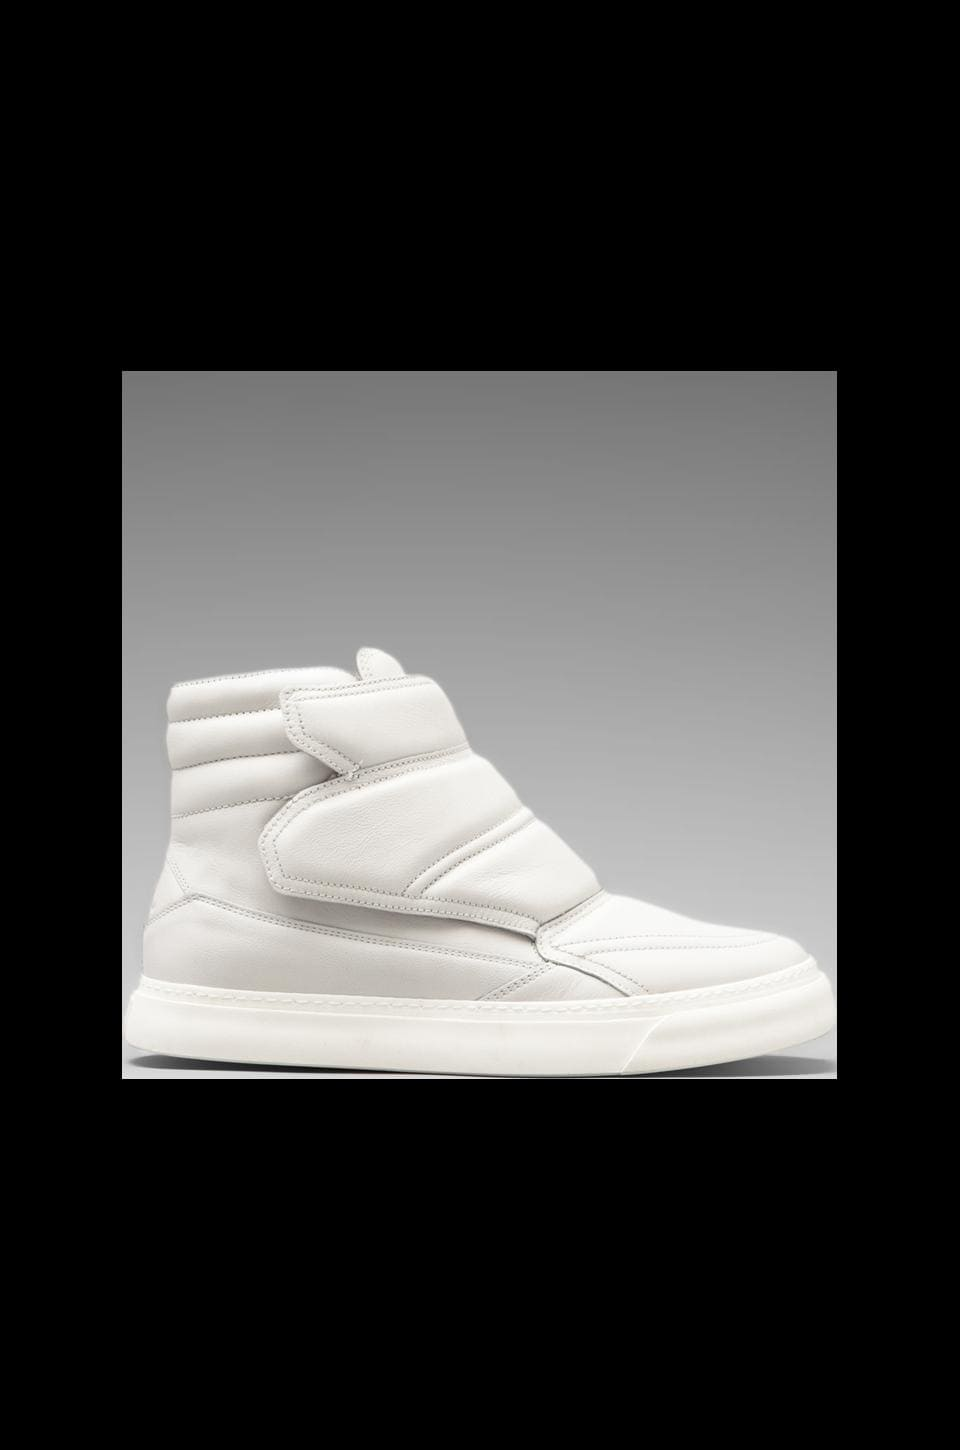 McQ Alexander McQueen New Sneaker in White